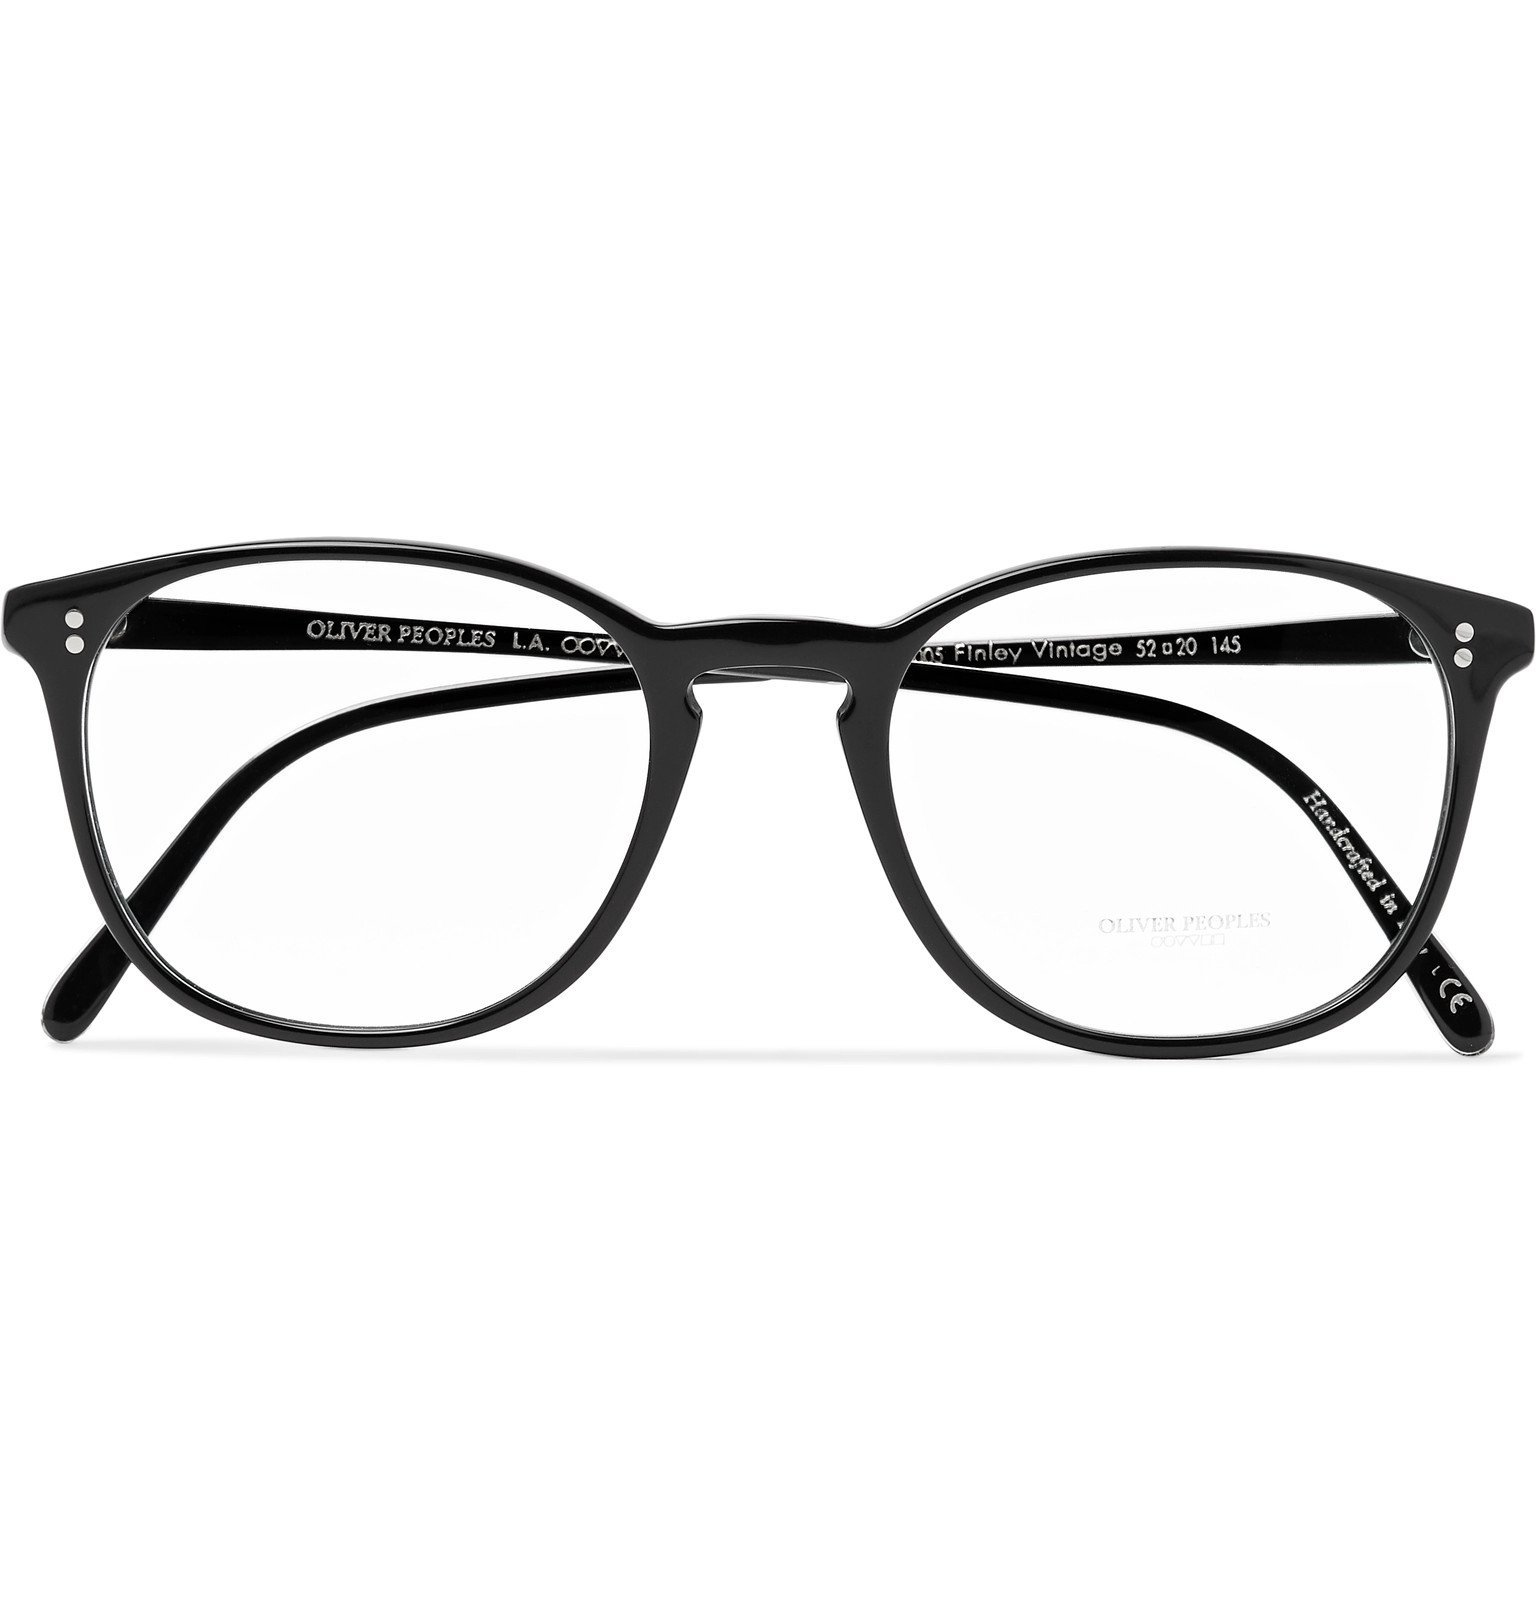 Oliver Peoples - Finley Vintage Round-Frame Acetate and Silver-Tone Metal Optical Glasses - Black